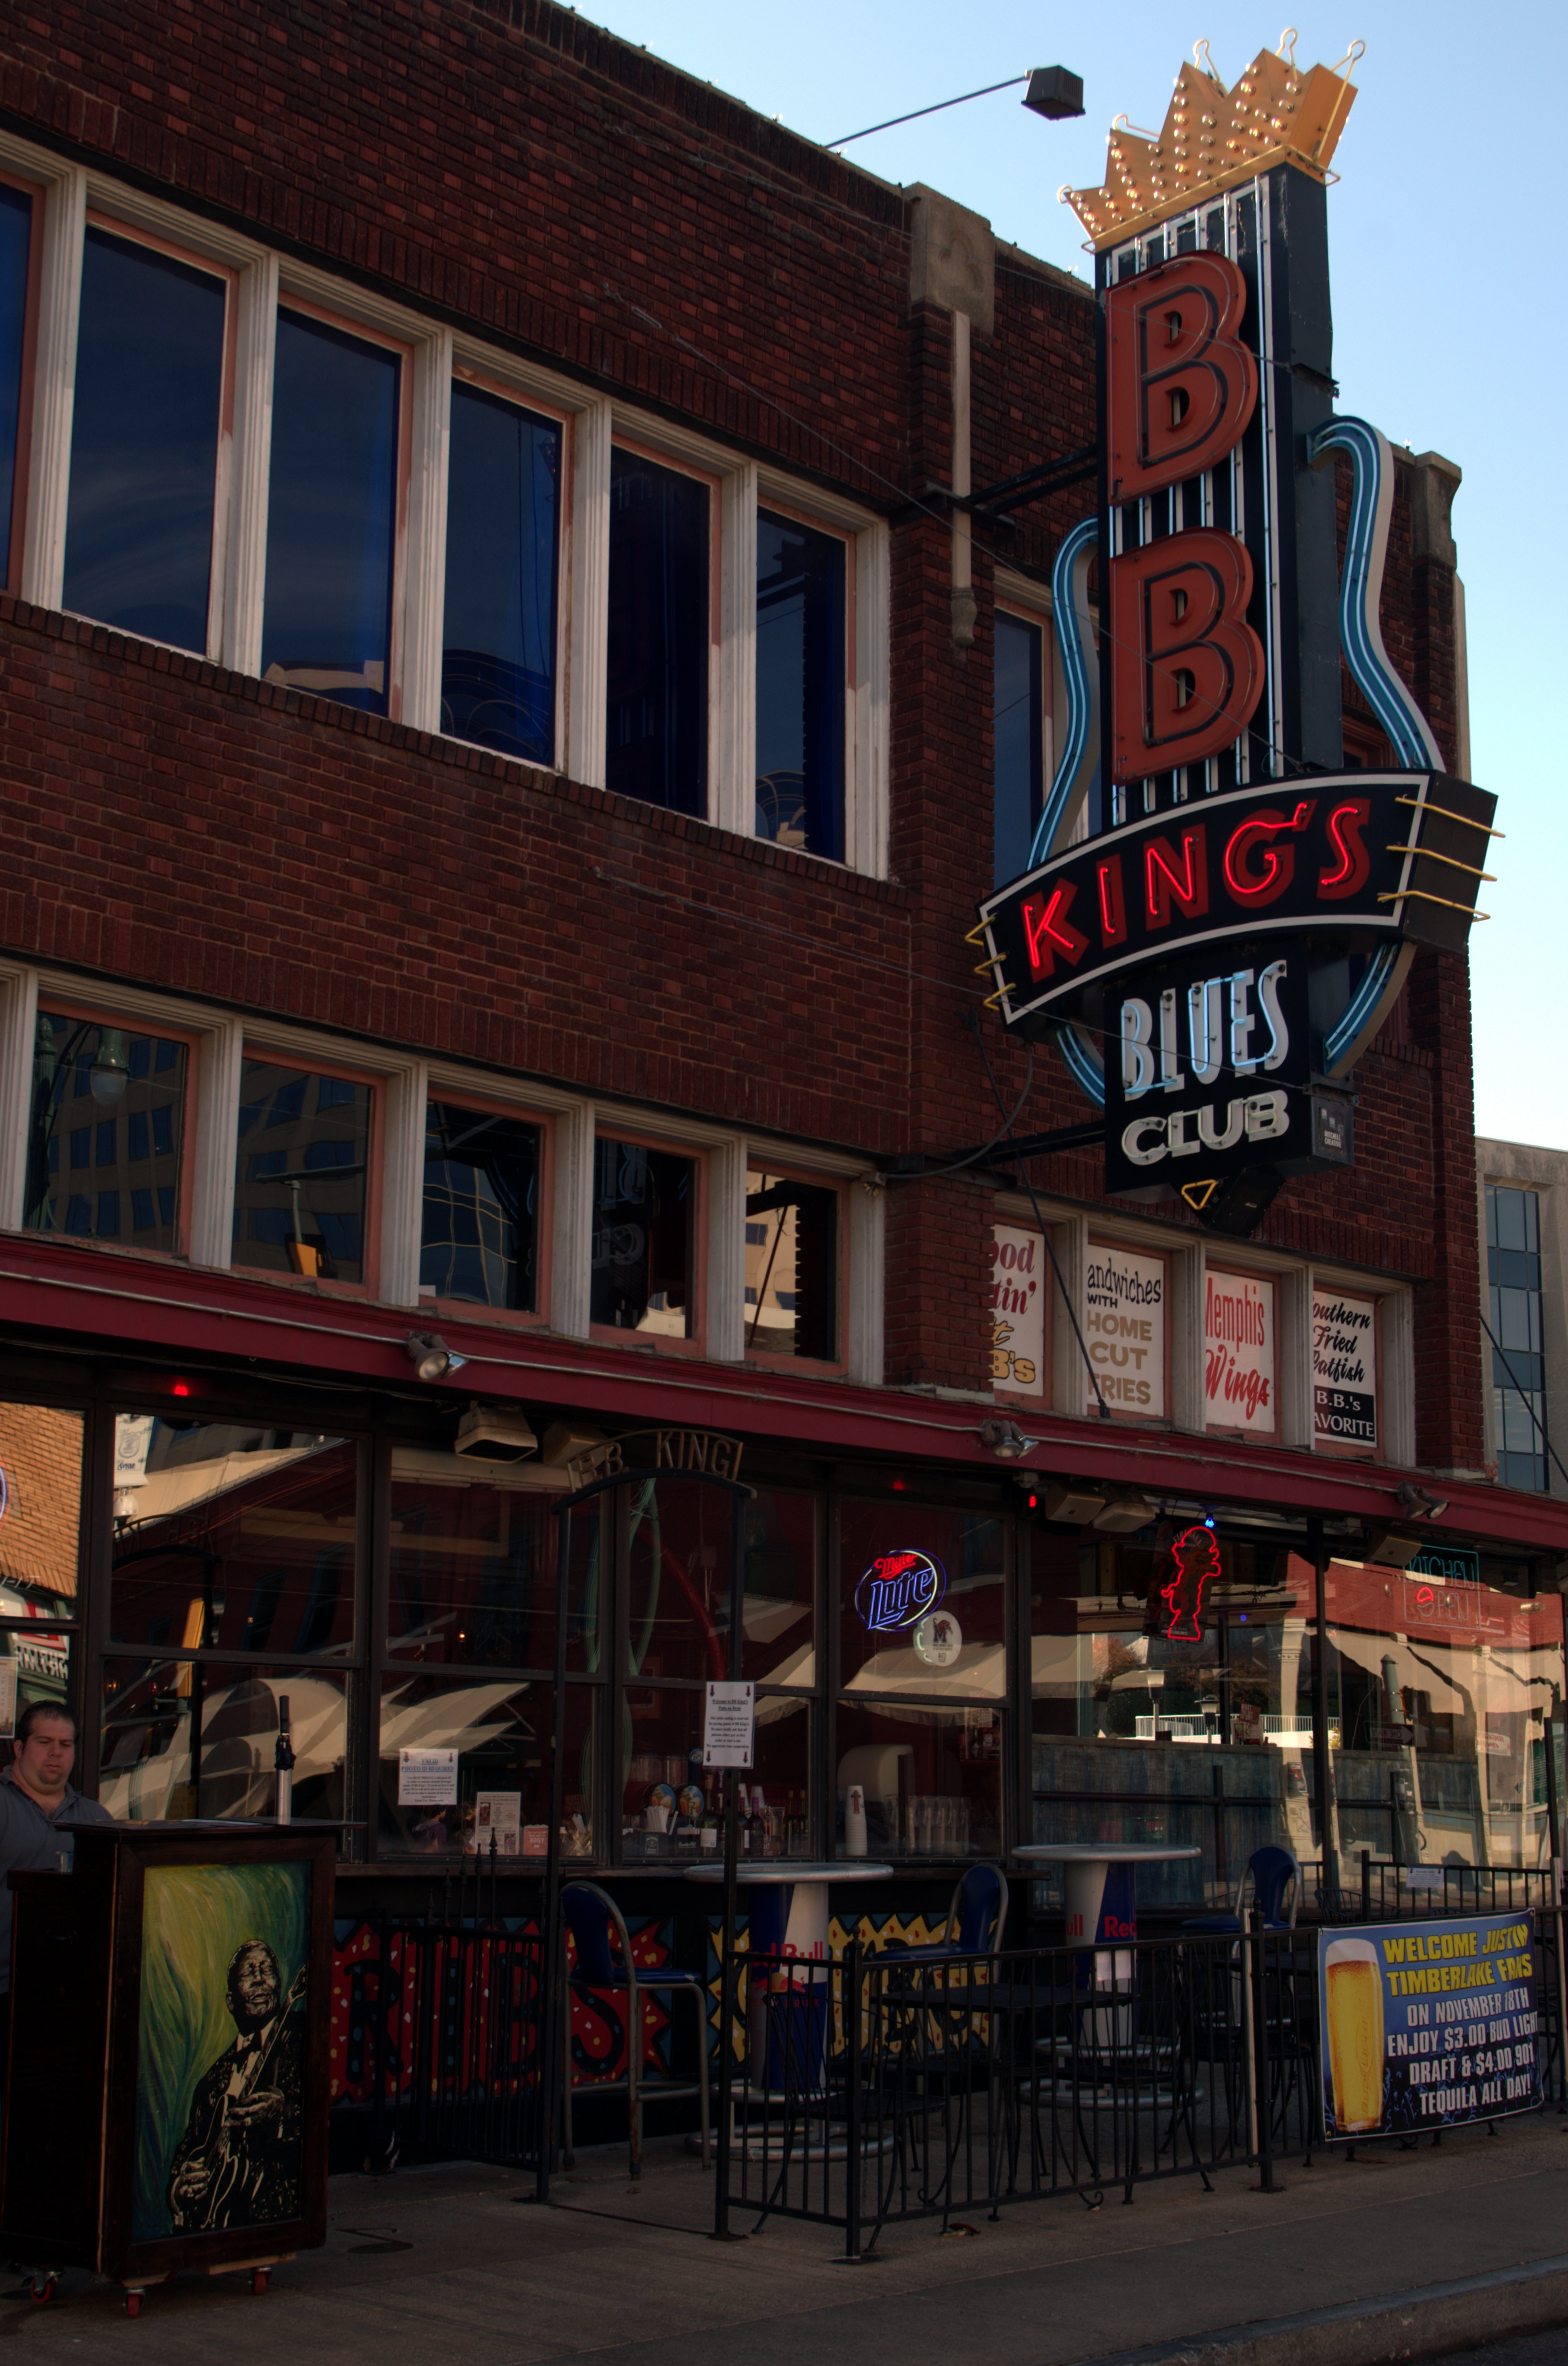 Just a few blocks away in downtown is Beale Street, home to music ...